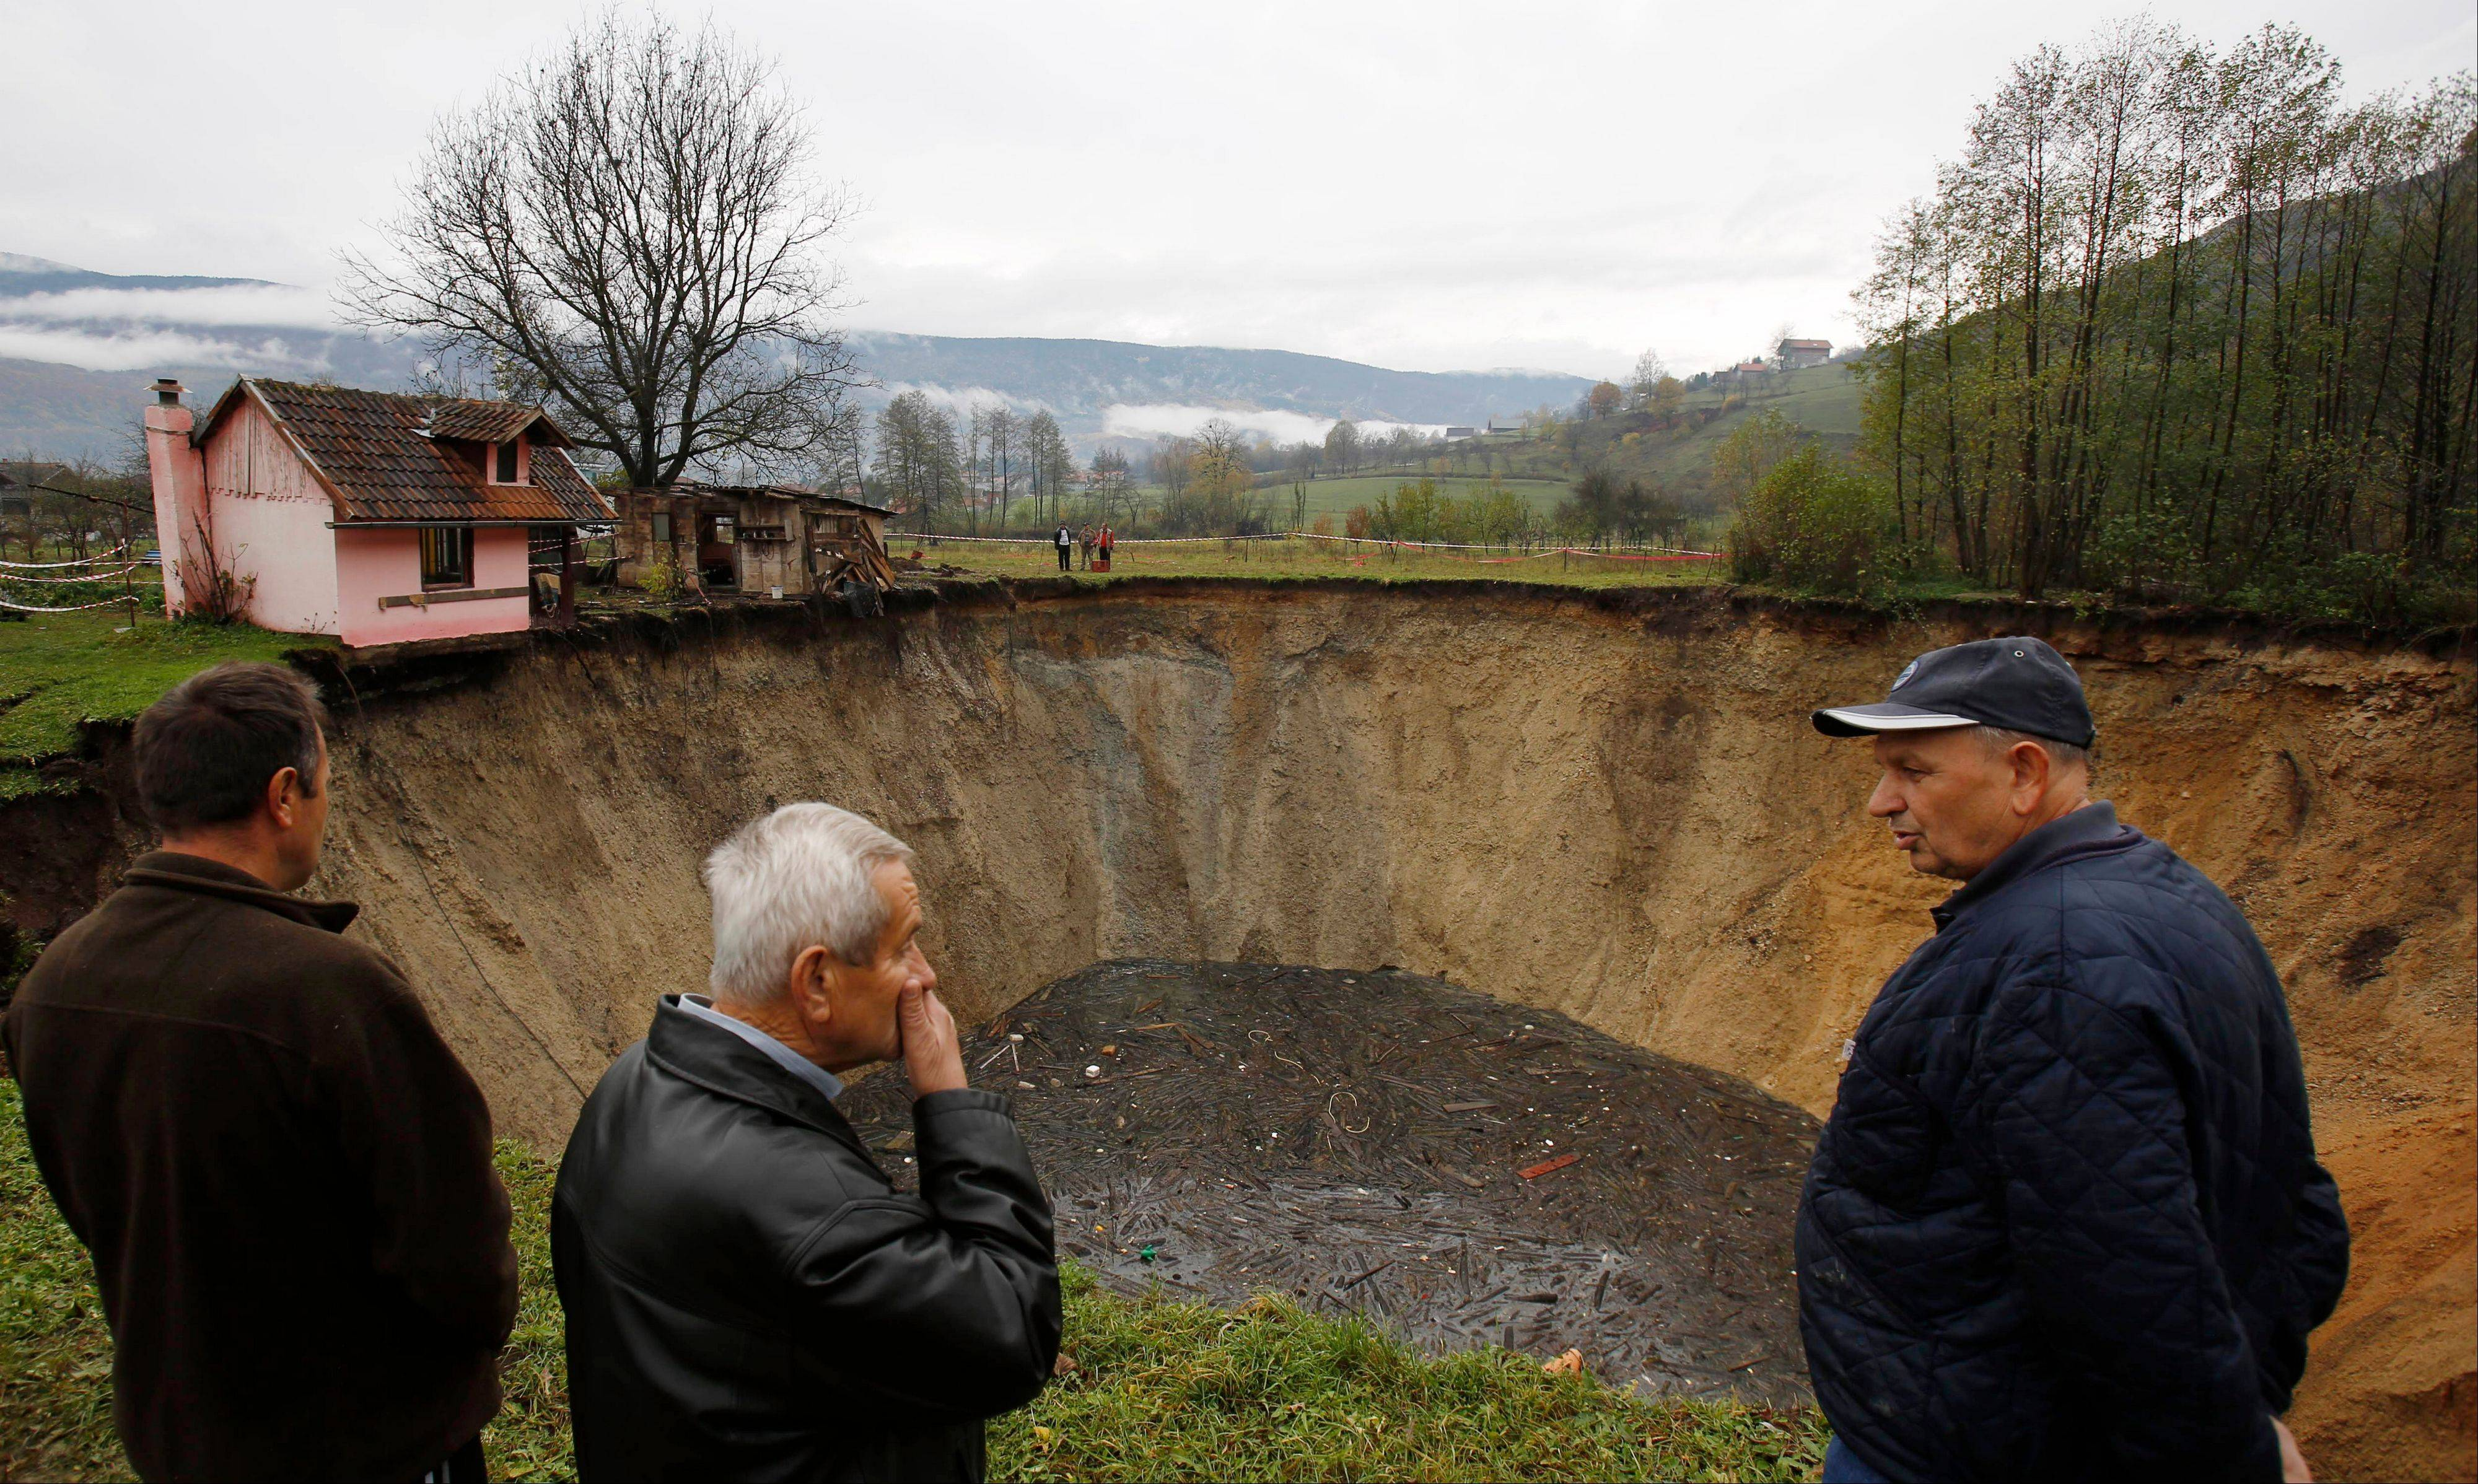 People gather around a huge sinkhole in the village of Sanica, Bosnia. Only weeks ago, the spot was a pond full of fish and floating green algae, lined with old willow and plum trees, and a grass field where cattle used to peacefully graze.